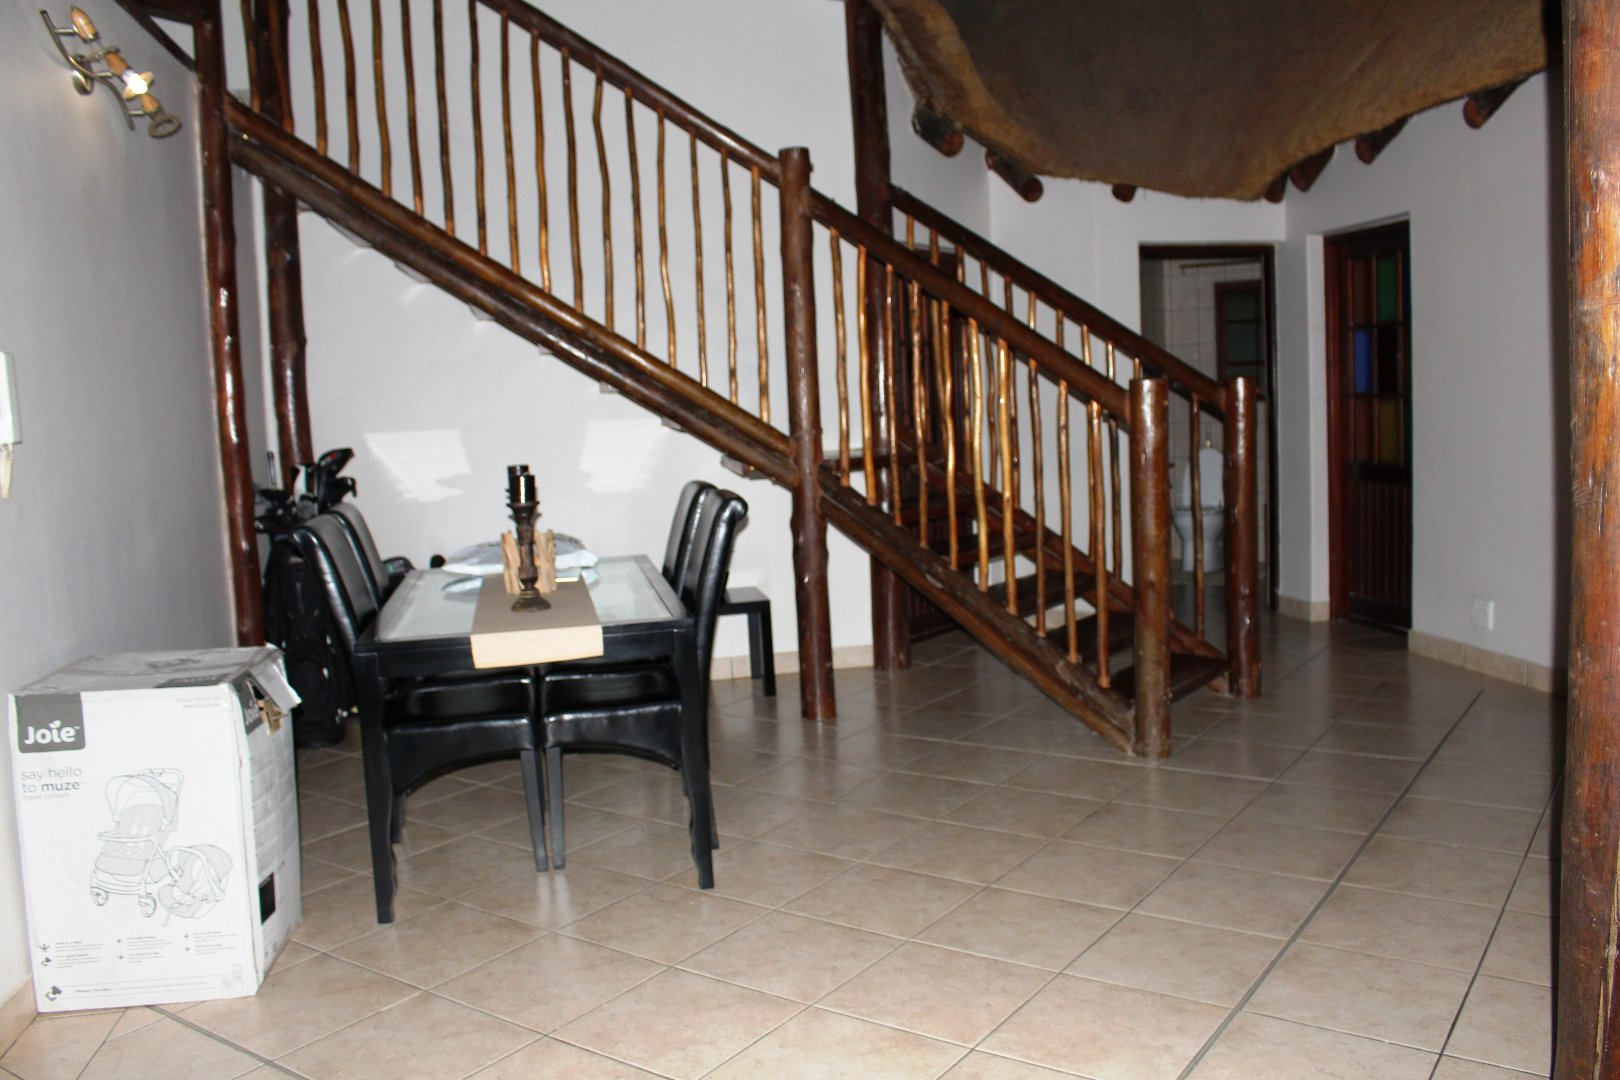 4 Bedroom House for sale in Montana Park ENT0058051 : photo#16